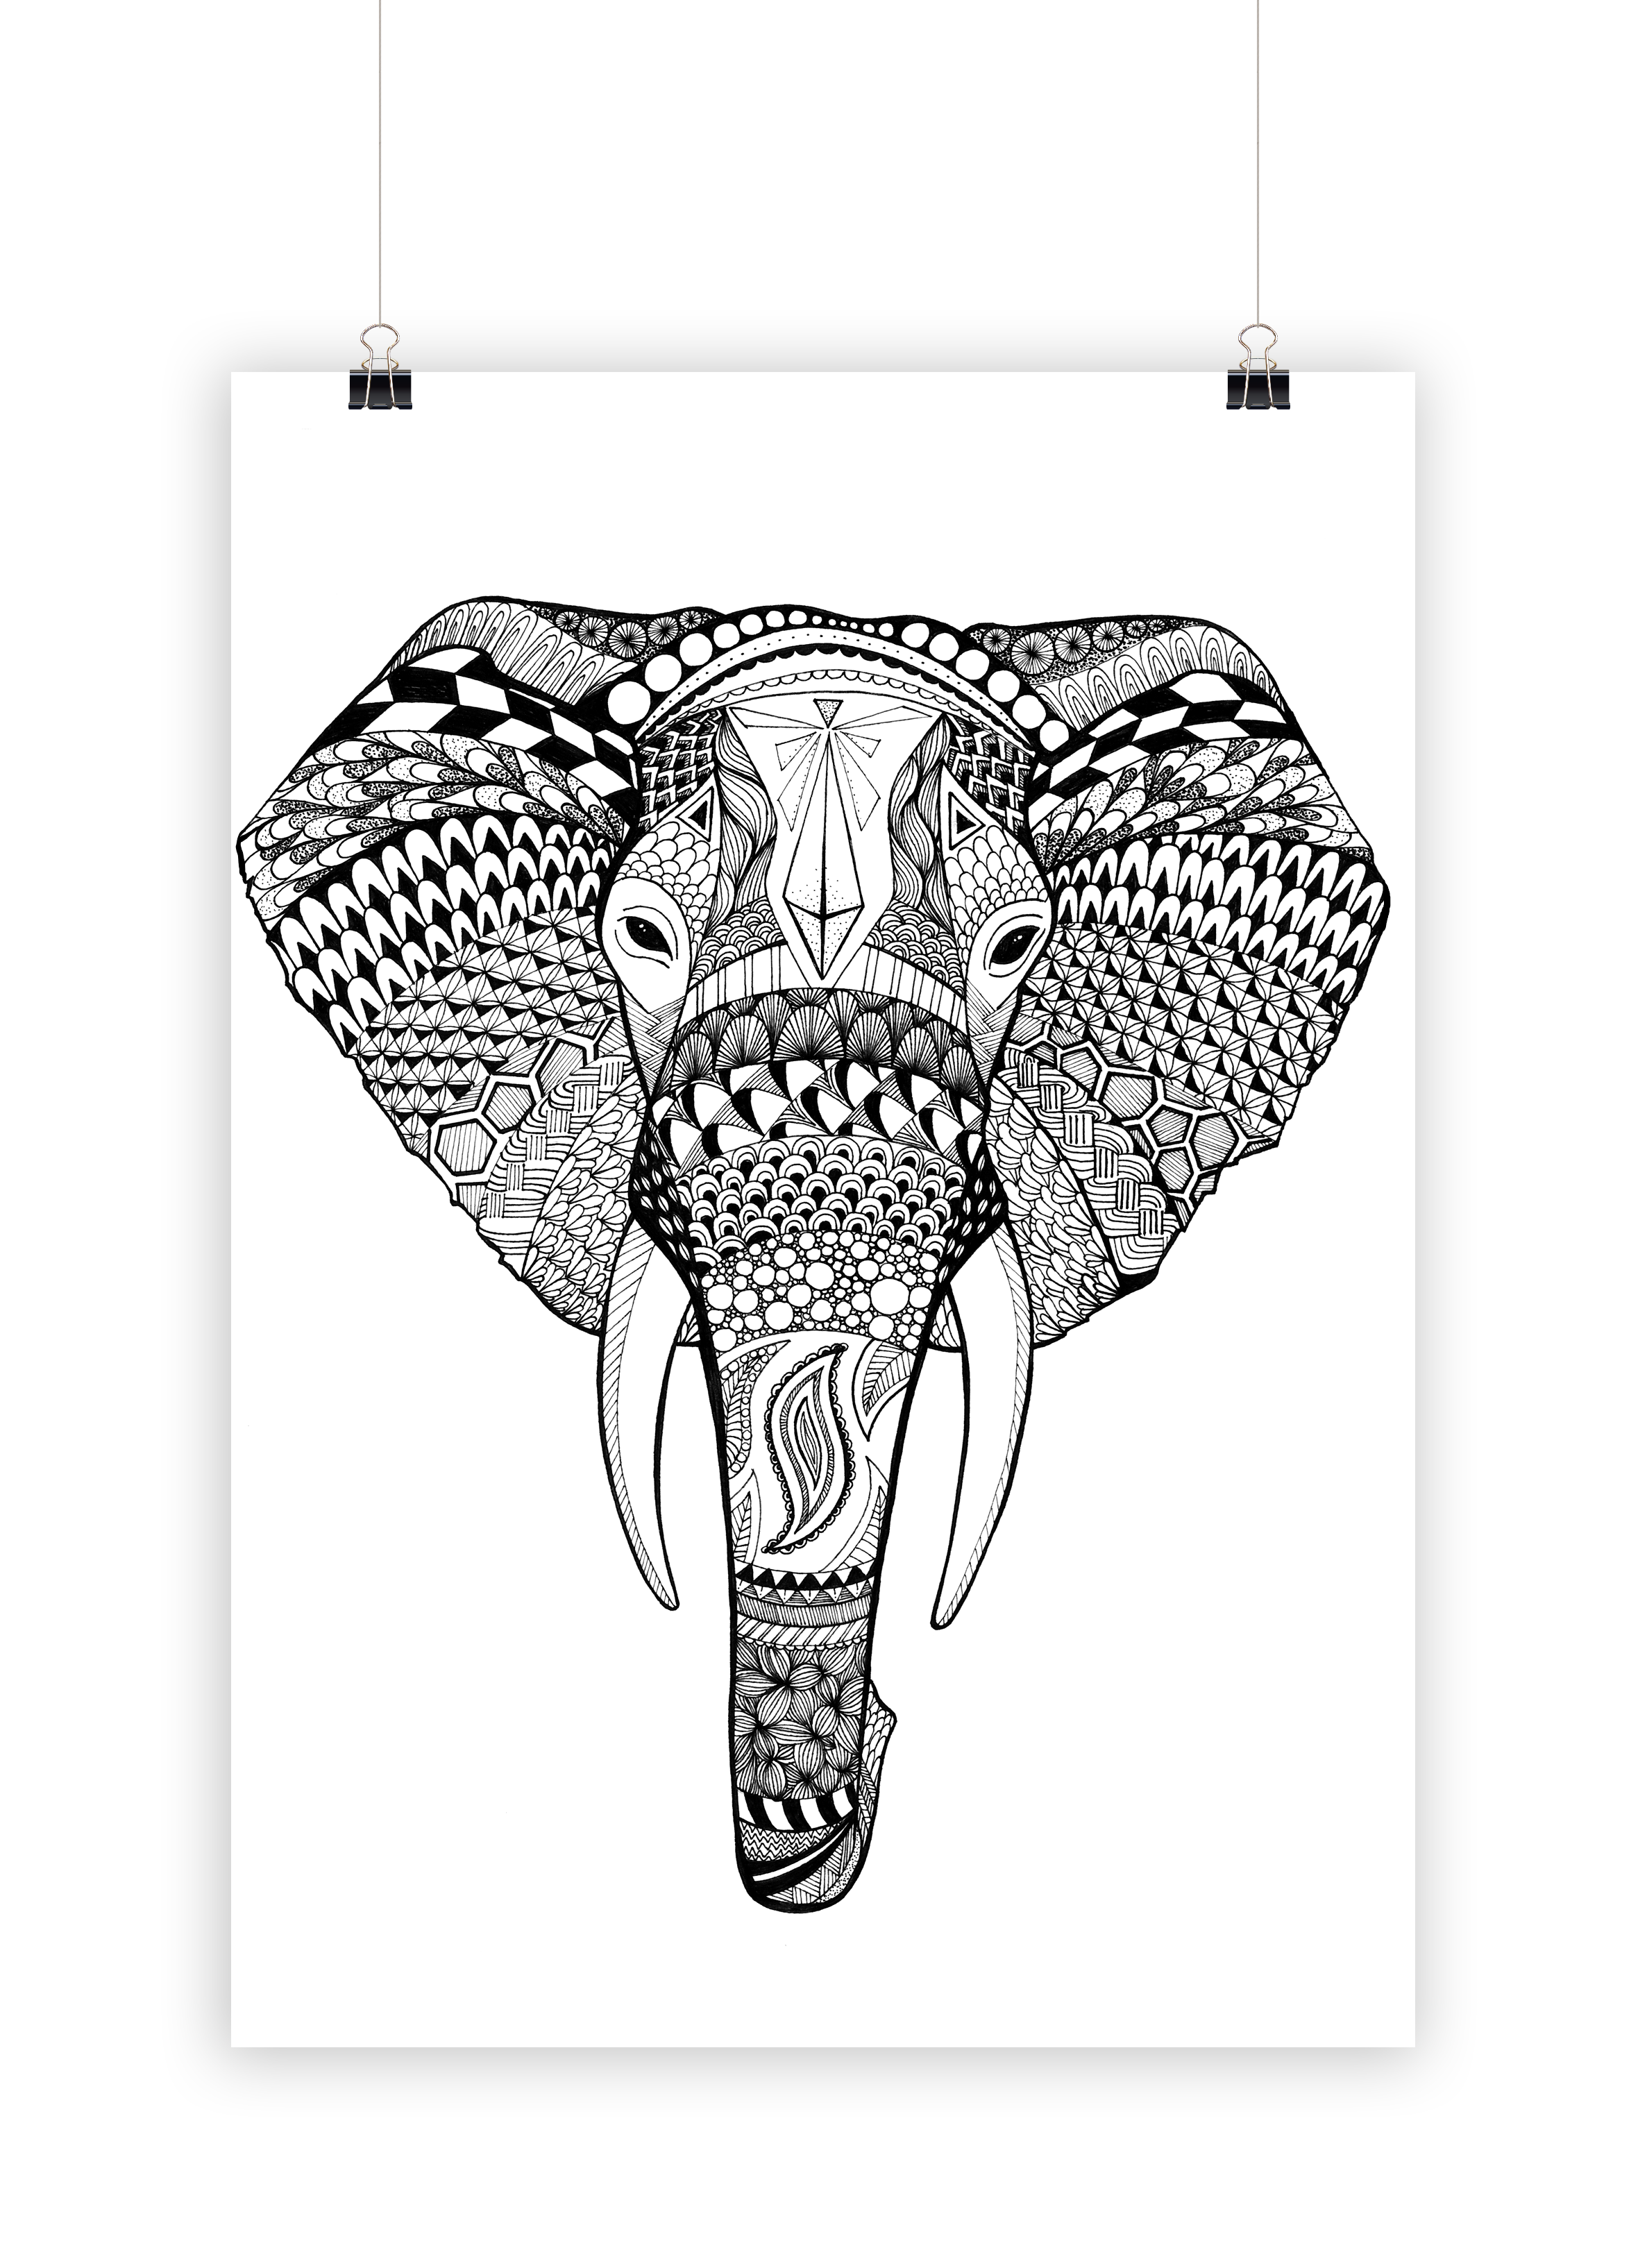 Zentangle Elefant Vorlage Zentangle Elefant Vorlage